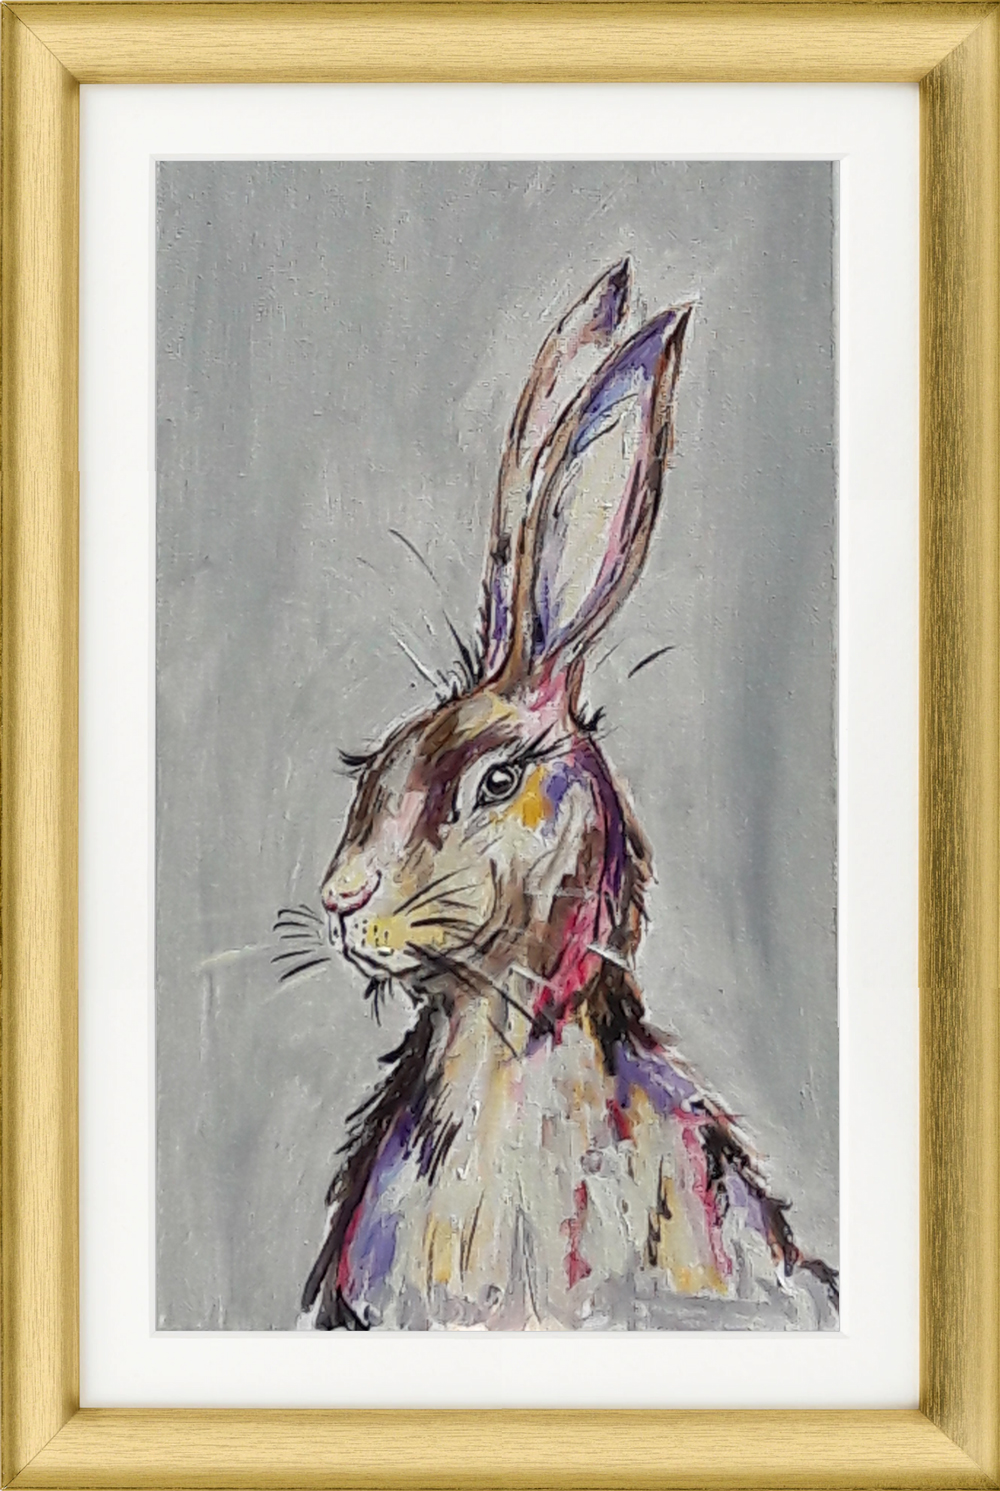 Rostrevor Rabbit